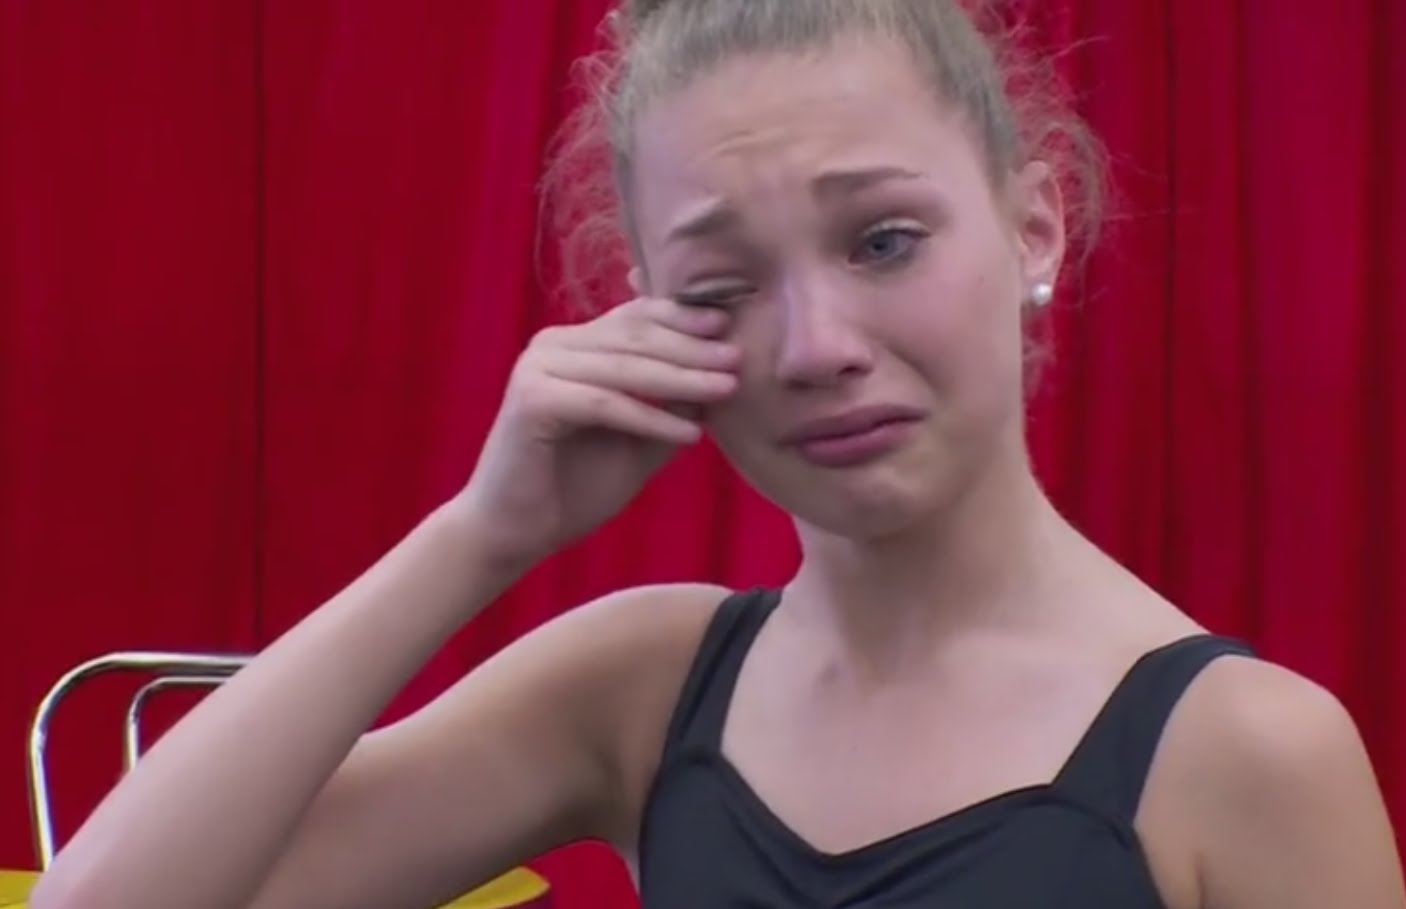 Why The Dance Moms Cast Left The Show